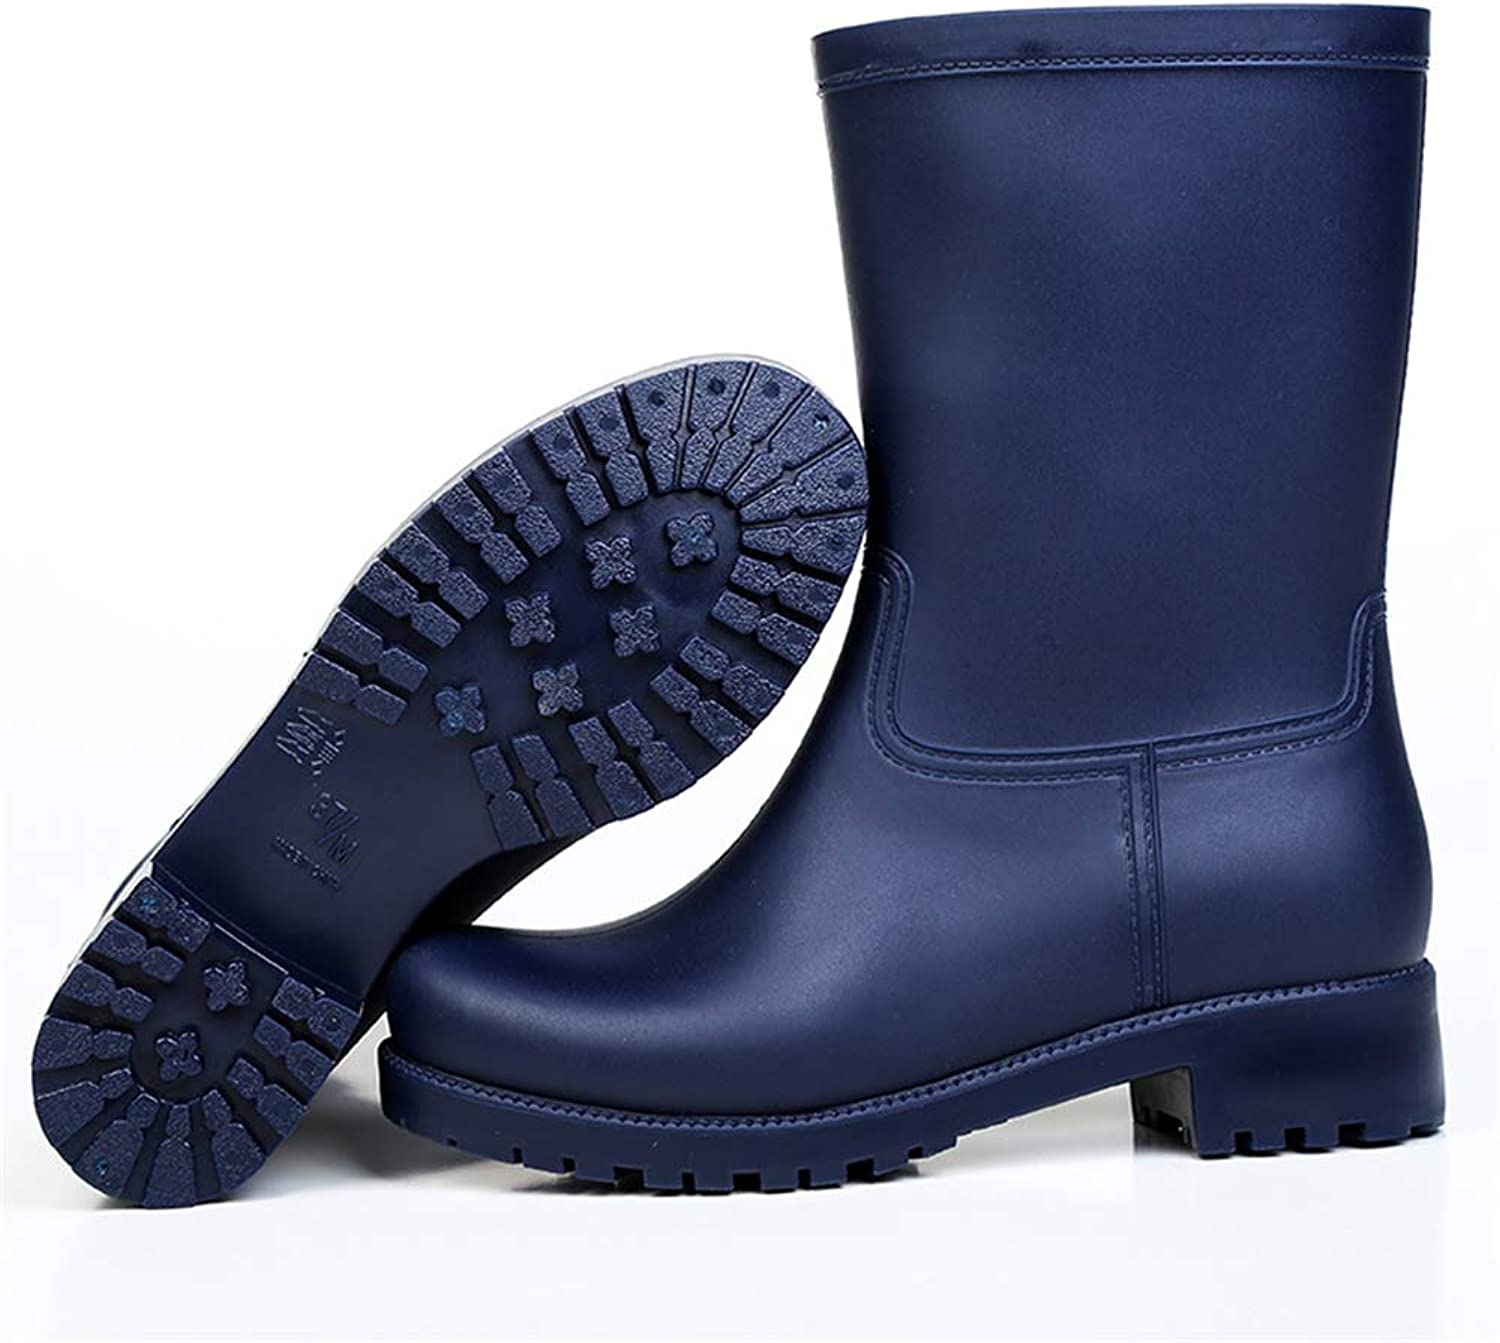 Fancyww Women's Thick Solid color Non-Slip Waterproof rain Boots